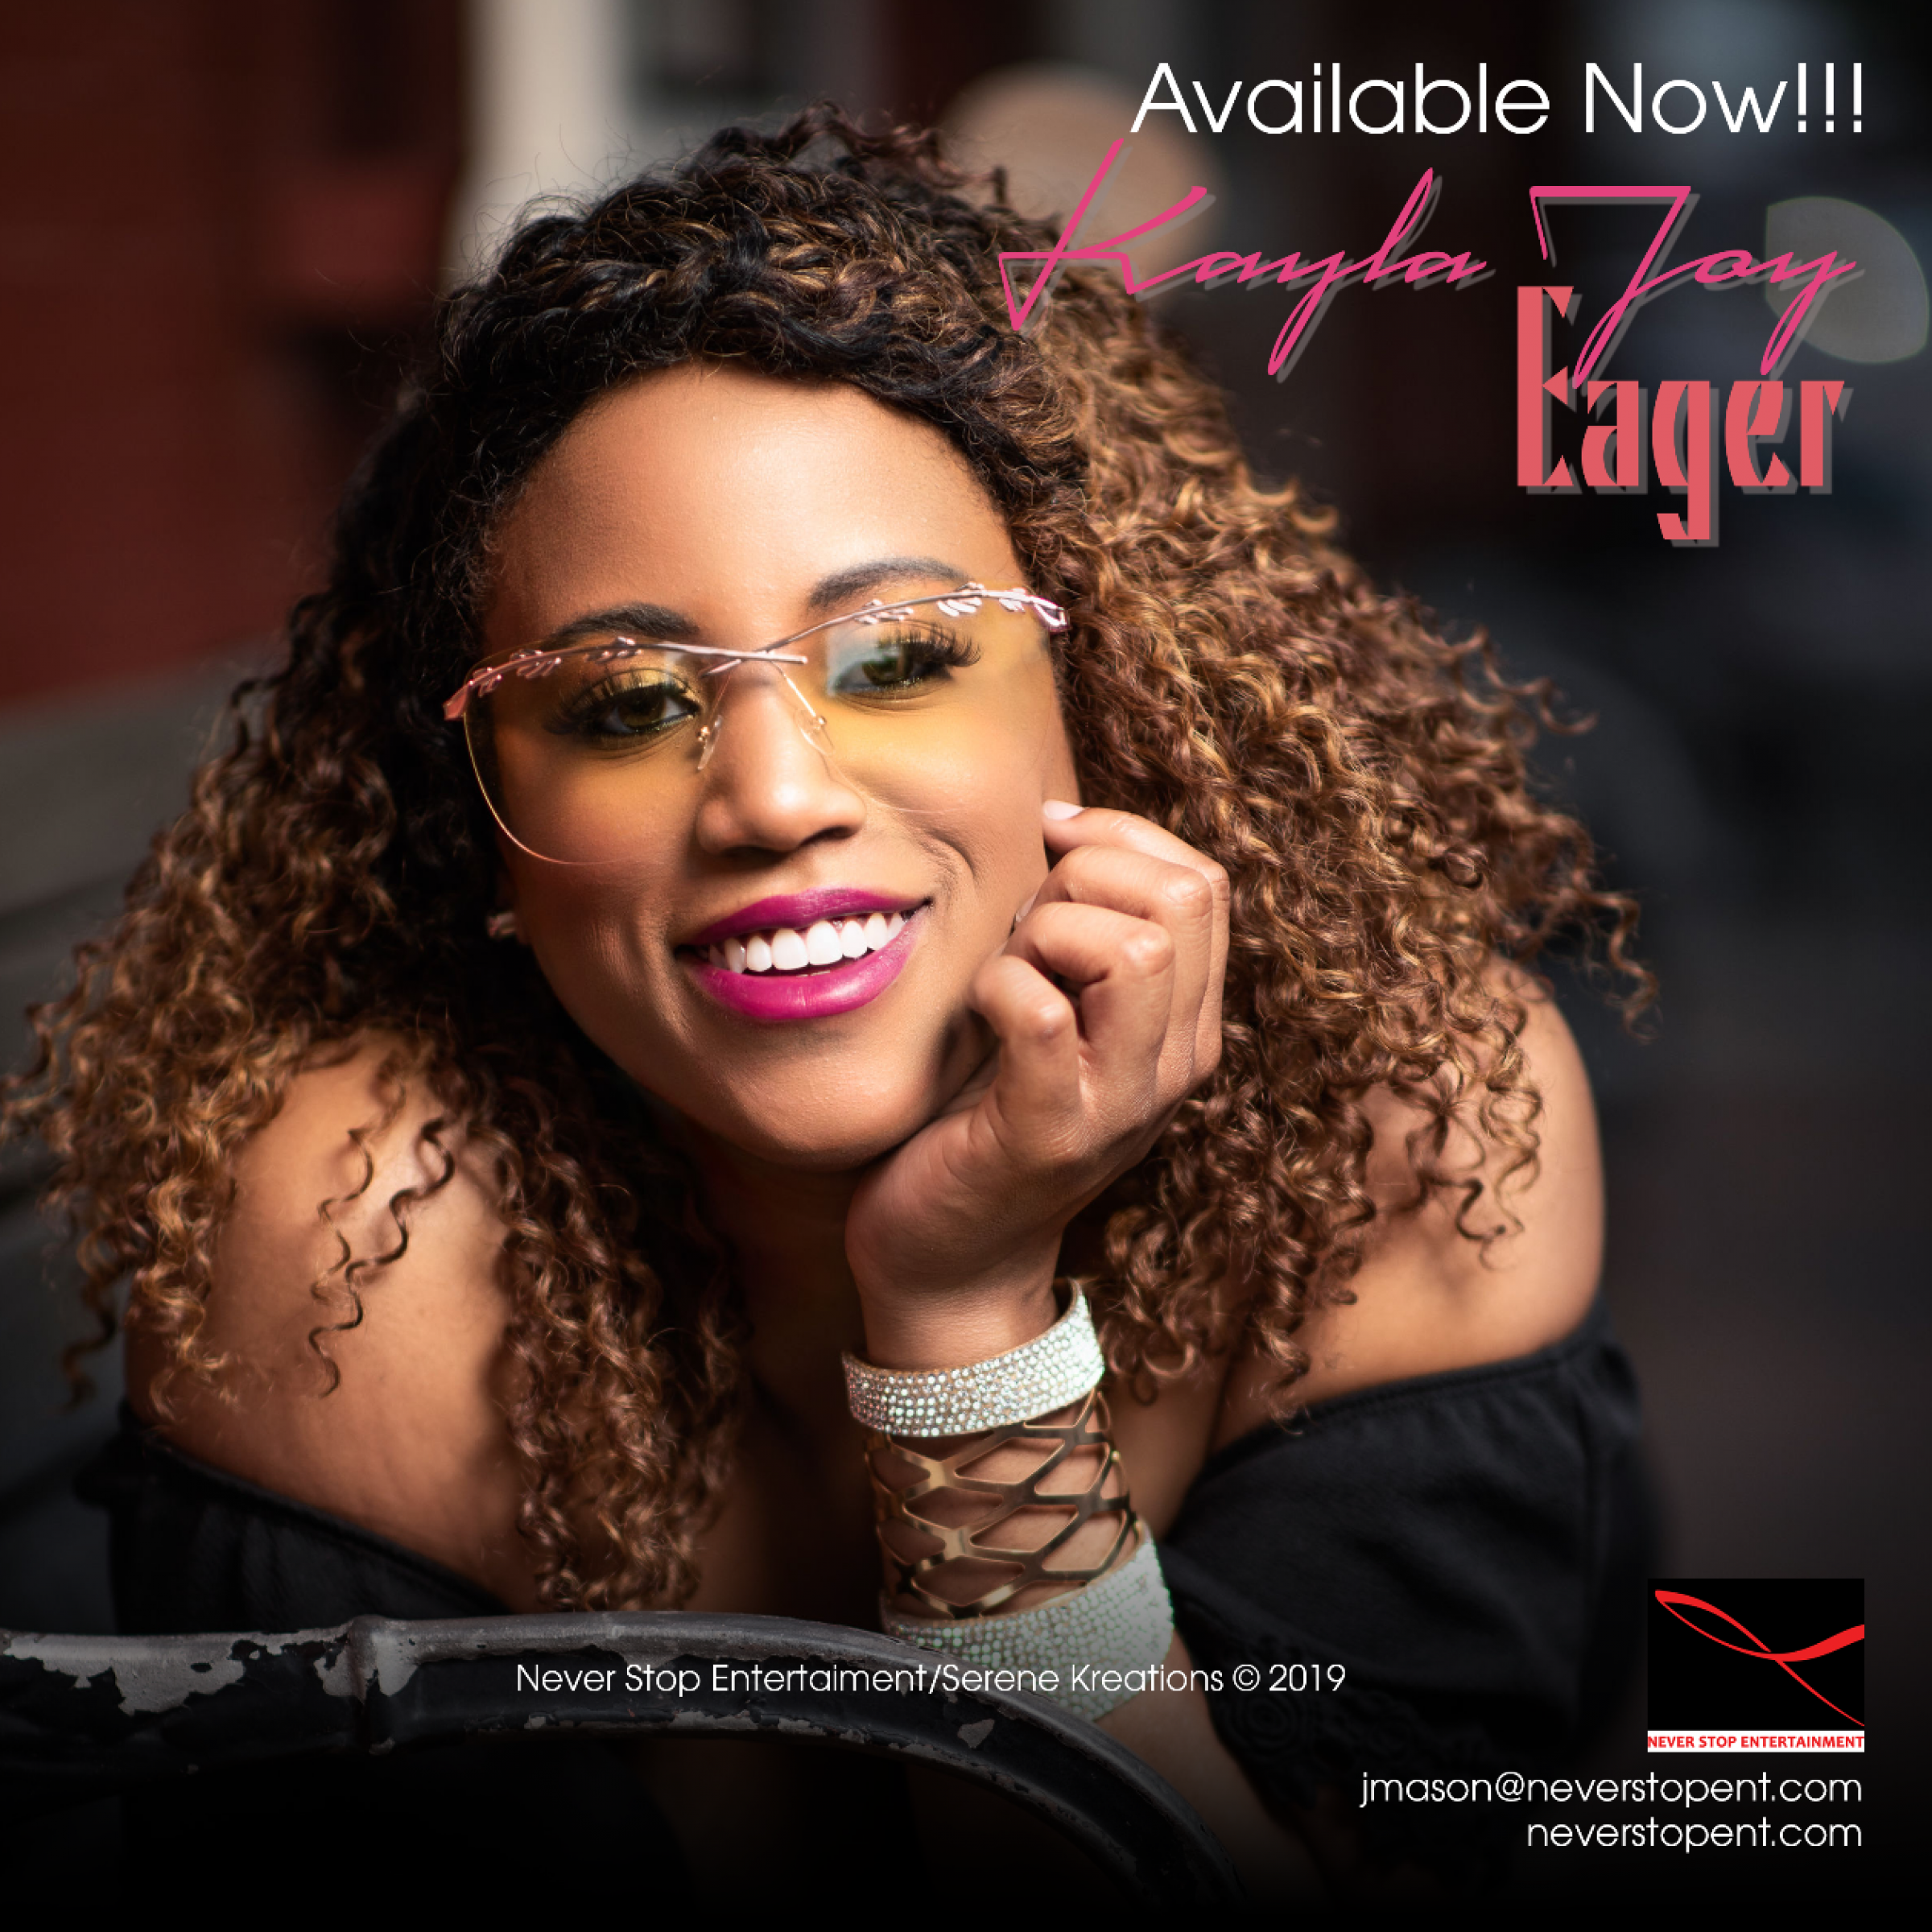 gallery/kayla joy eager available now